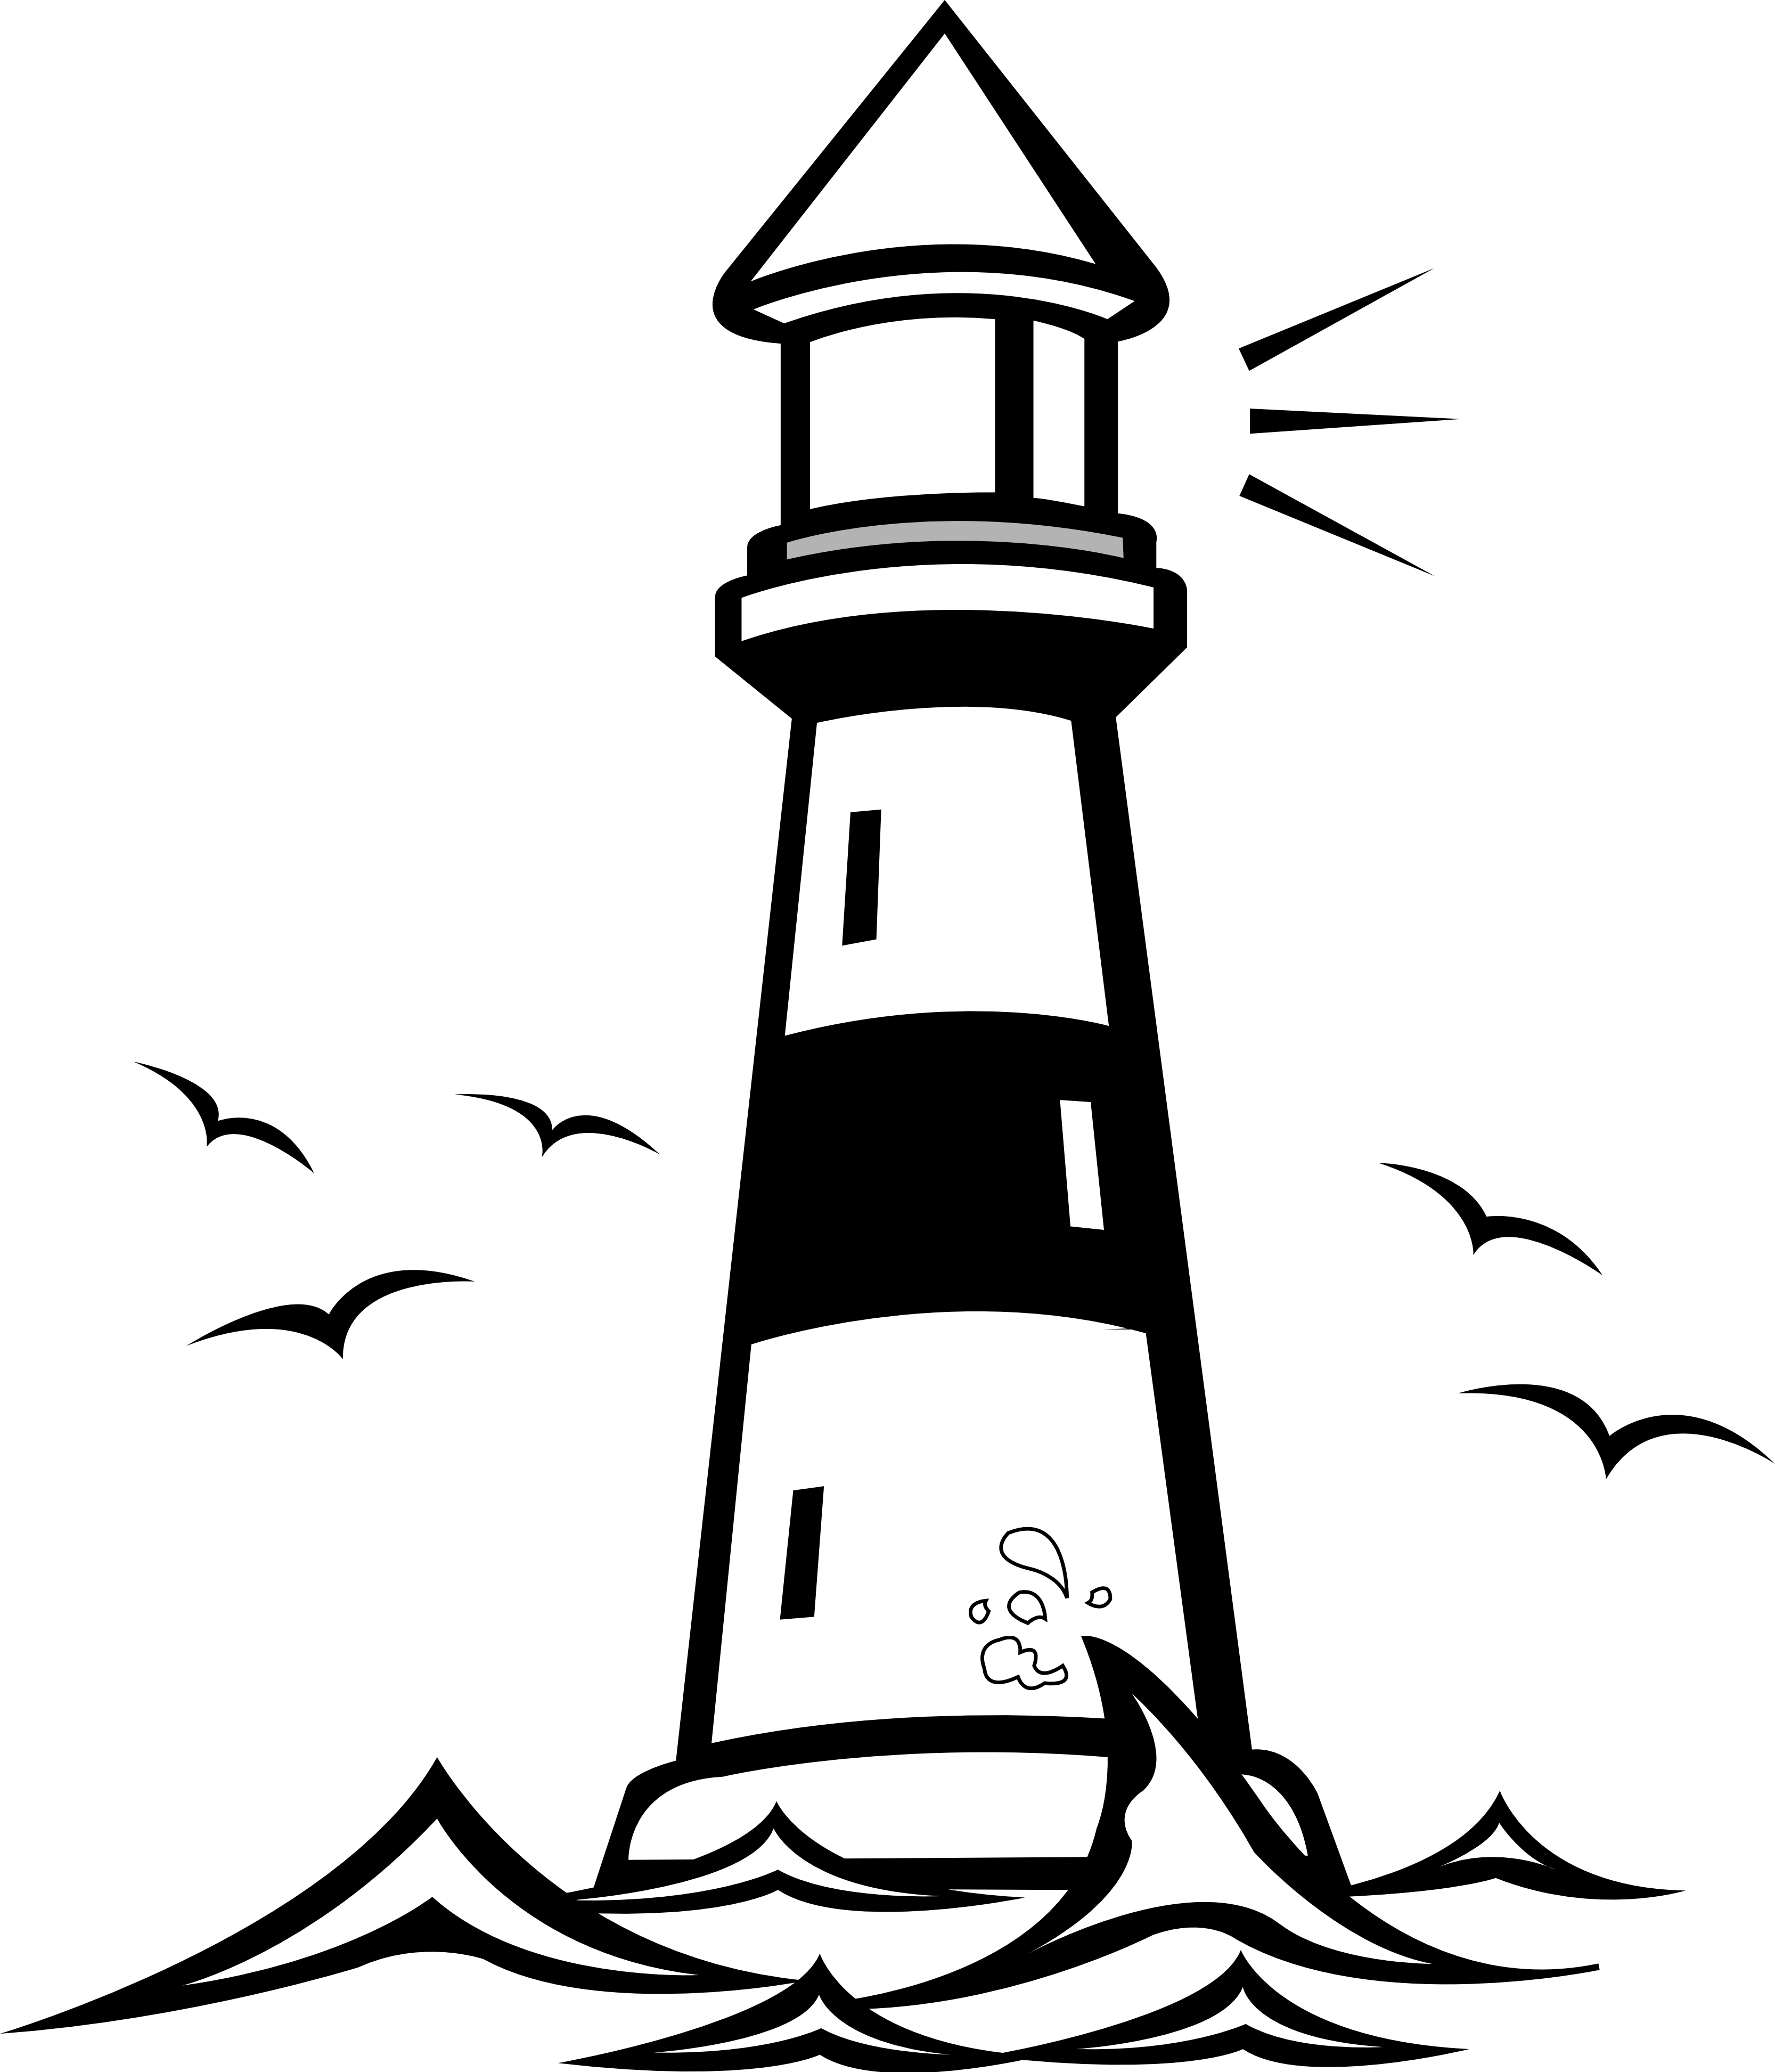 Whitehouse Christmas 2017 >> Lighthouse Clip Art Free Printable | Clipart Panda - Free Clipart Images